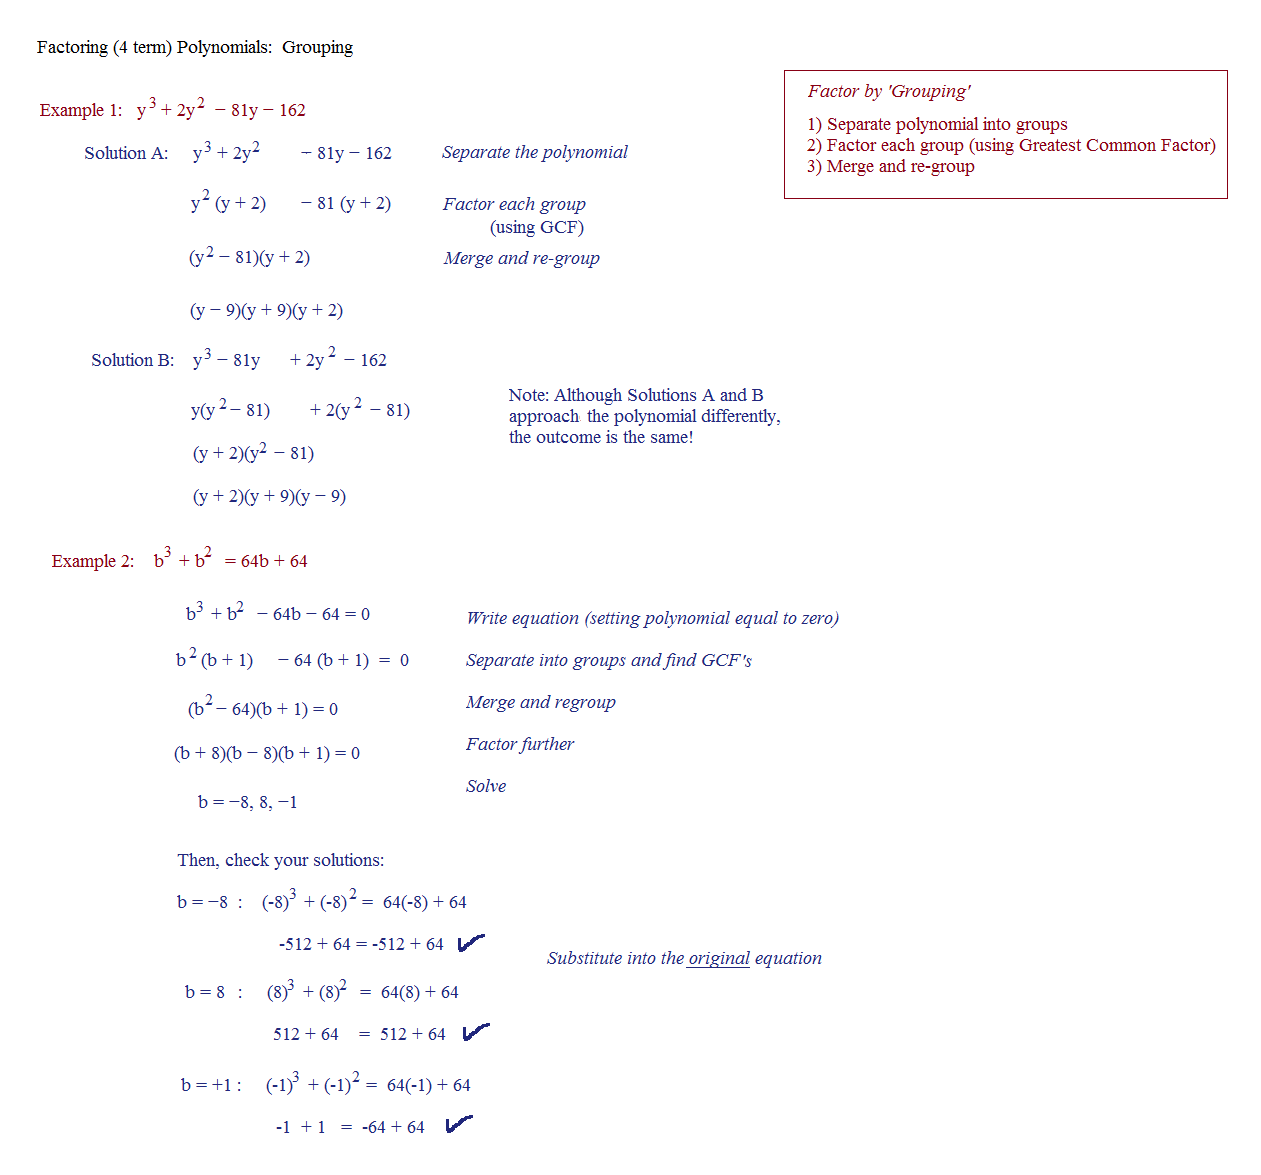 worksheet Factoring Binomials And Trinomials Worksheet factoring help homework polynomial math trinomials a worksheets intrepidpath plane simplifying rational polynomials